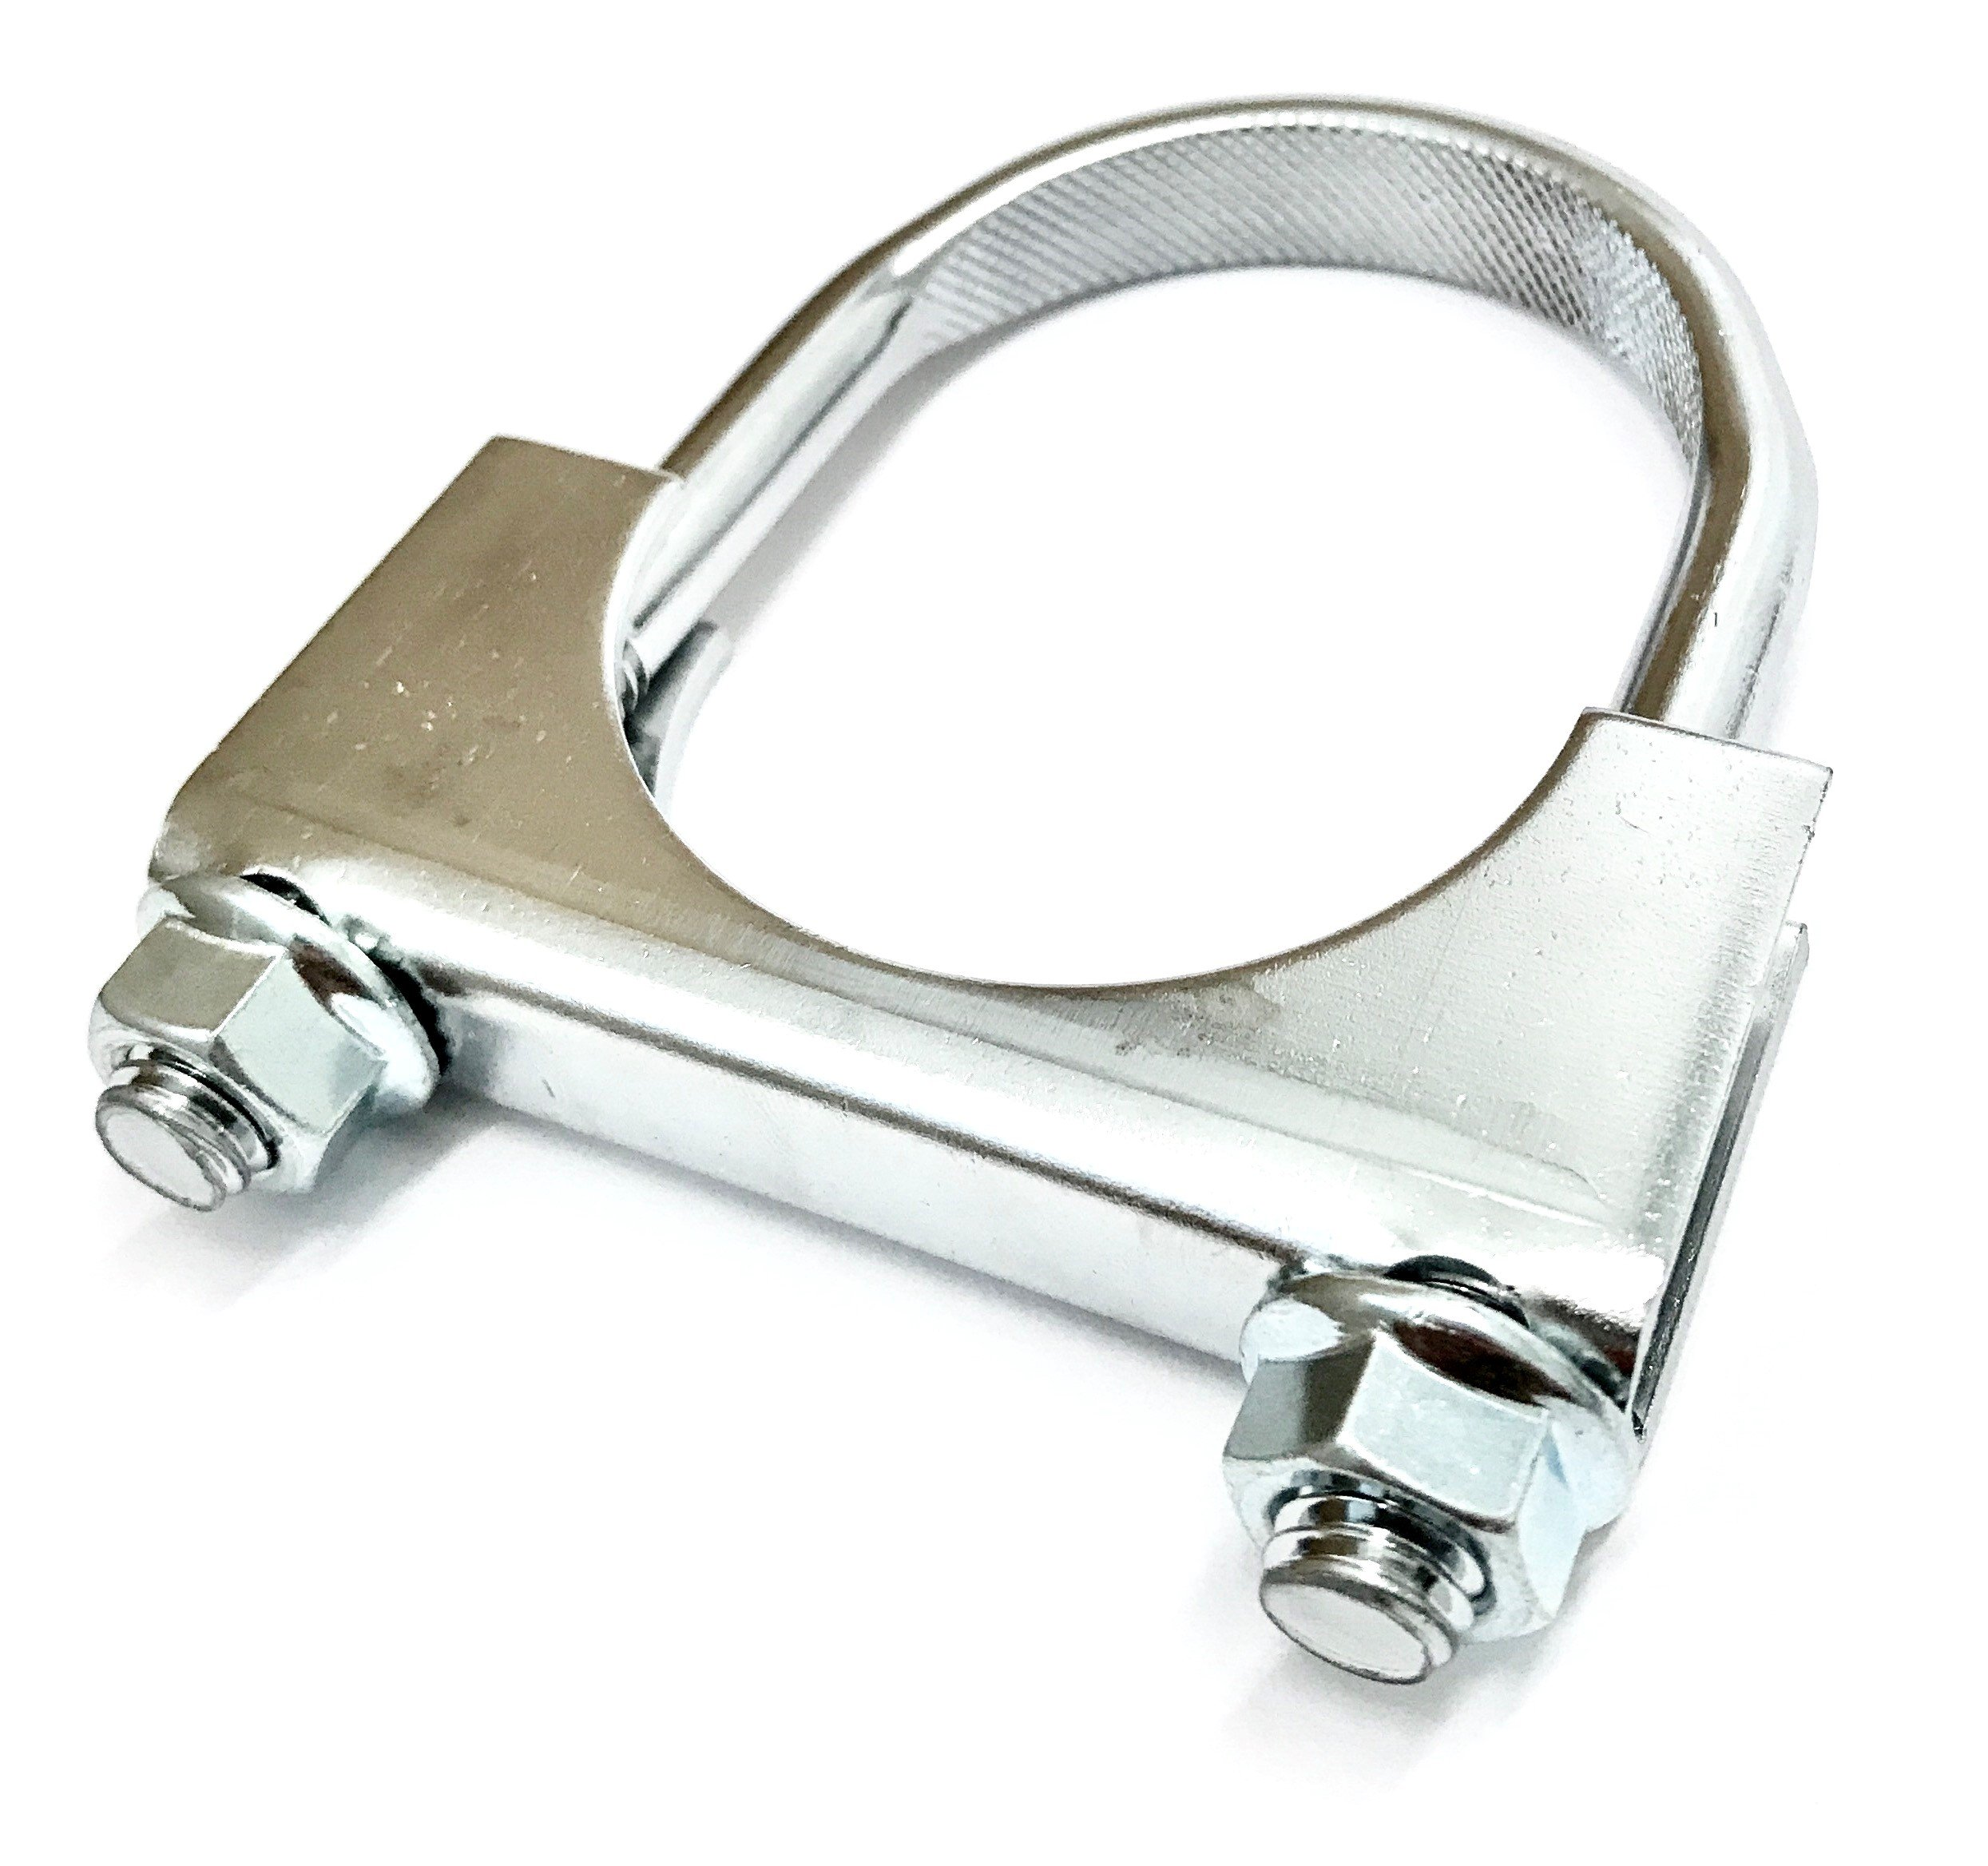 Chrome Heavy Duty Double Edge Open Saddle Muffler Clamp (6'') by After Market Auto & More